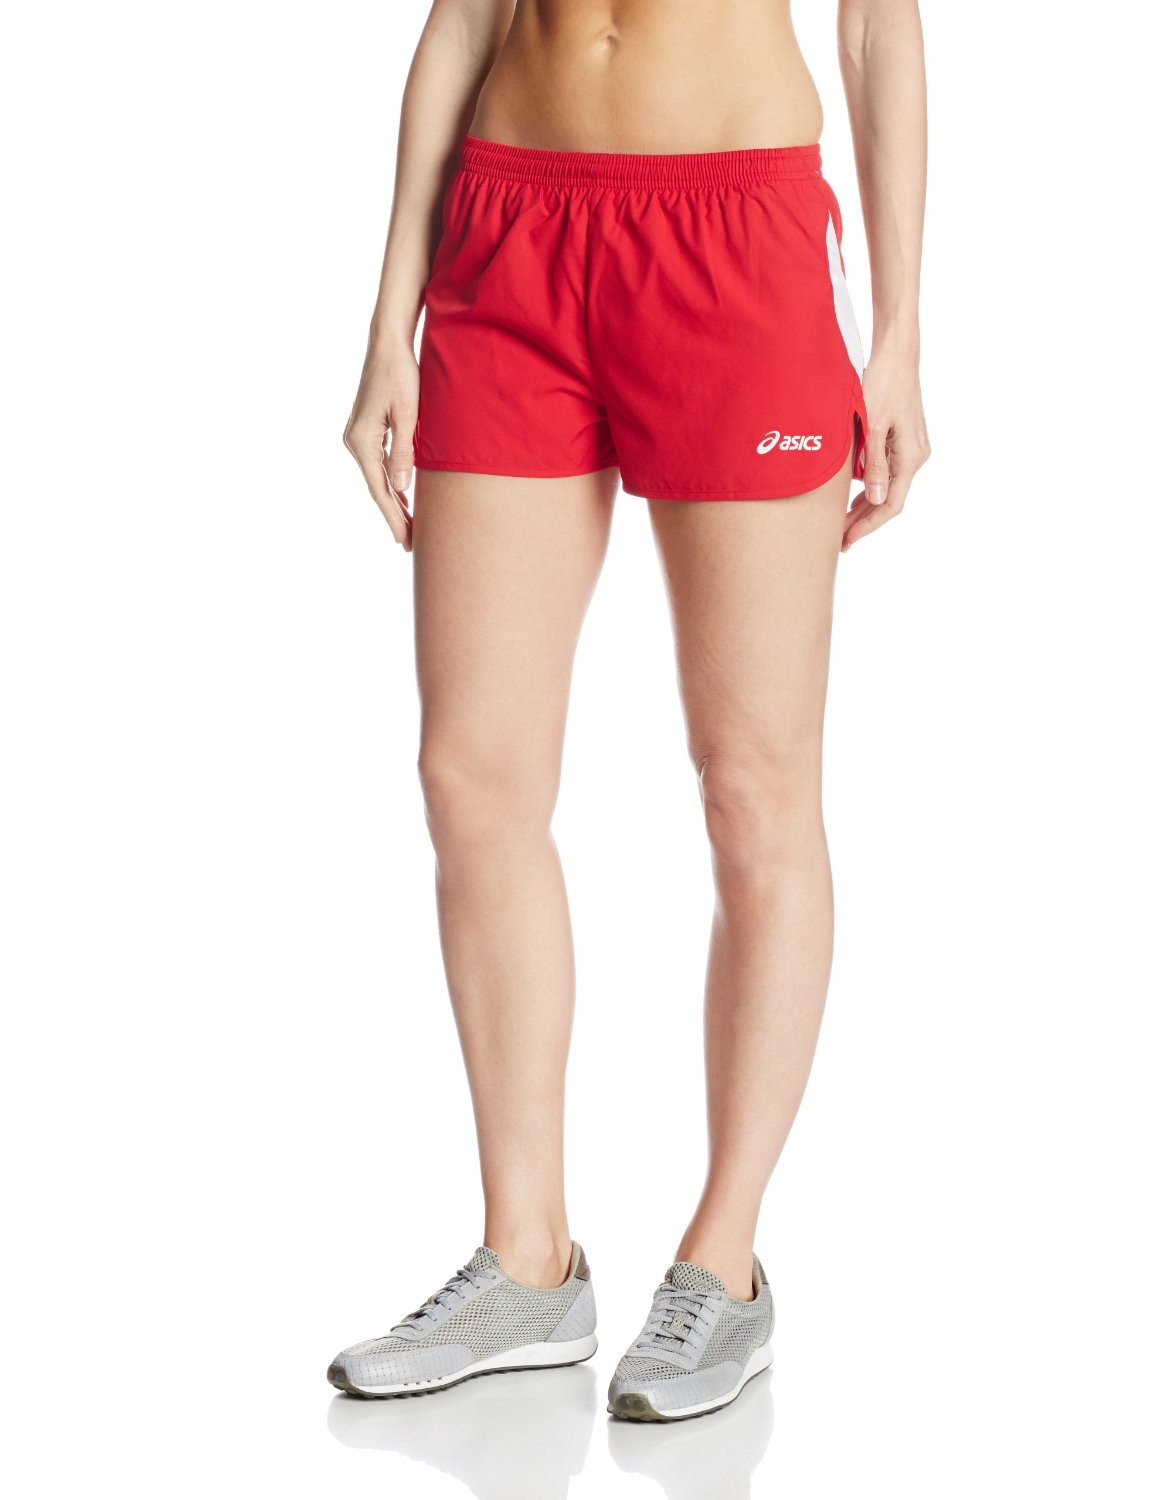 Amazon.com: ASICS Women's Wicked 1/2 Split Short (Red/White): Sports & Outdoors